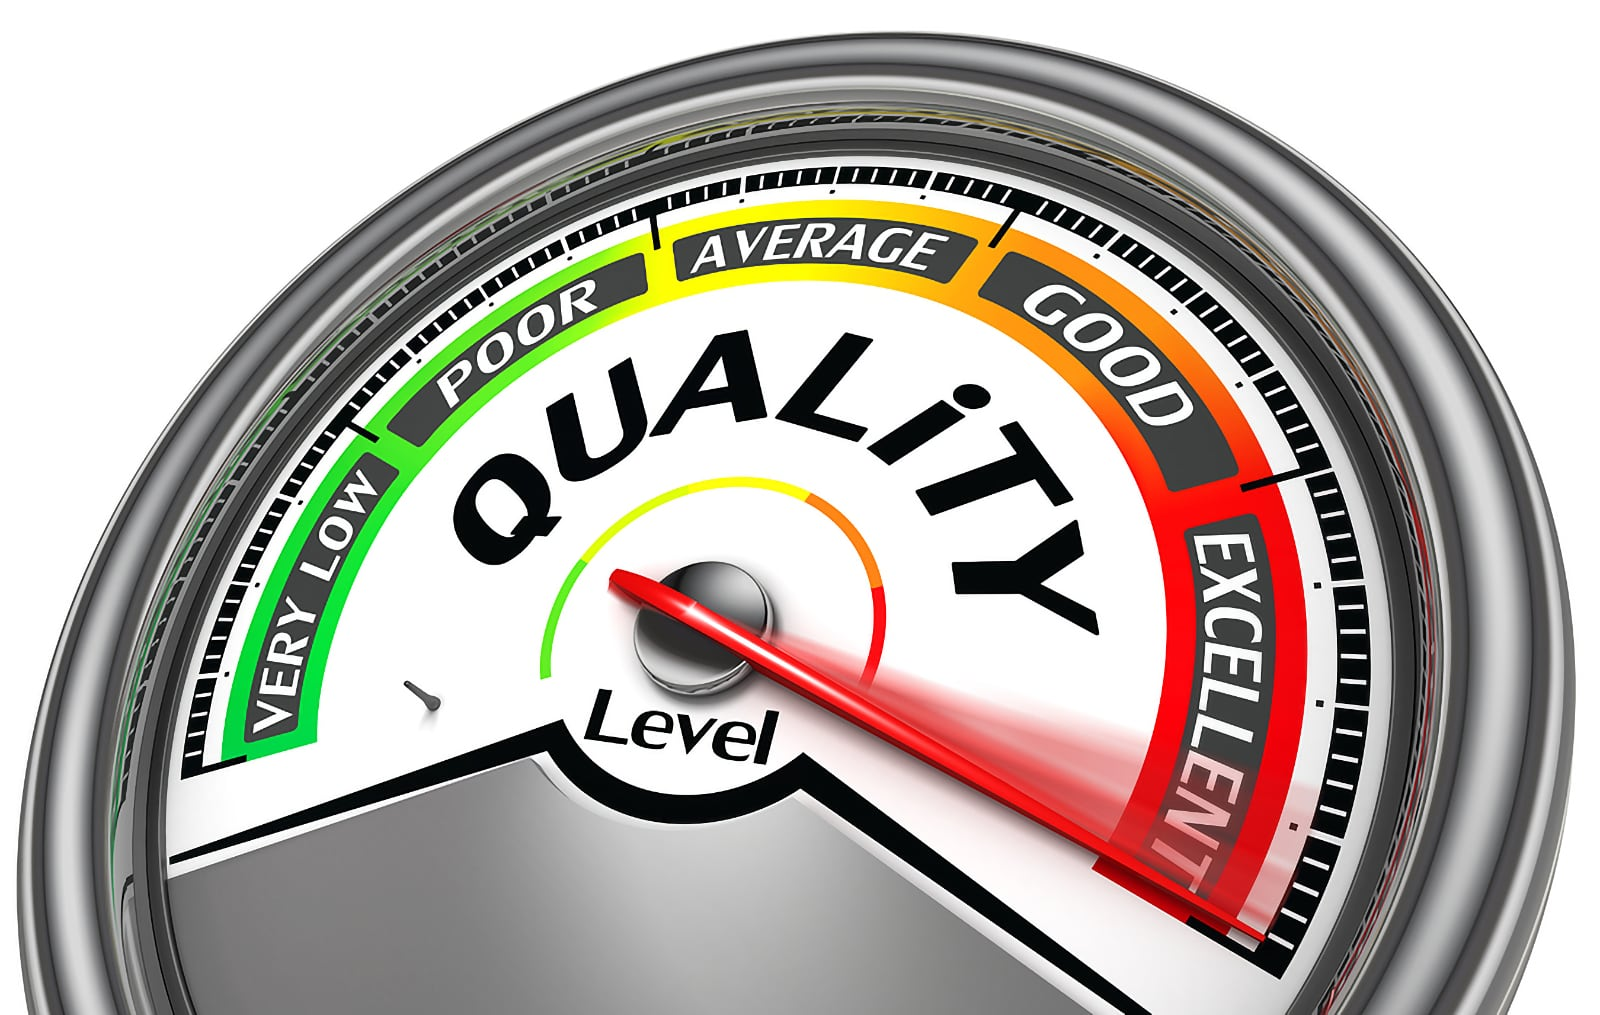 Quality level meter image concept, with meter pointer pointing at Excellence level